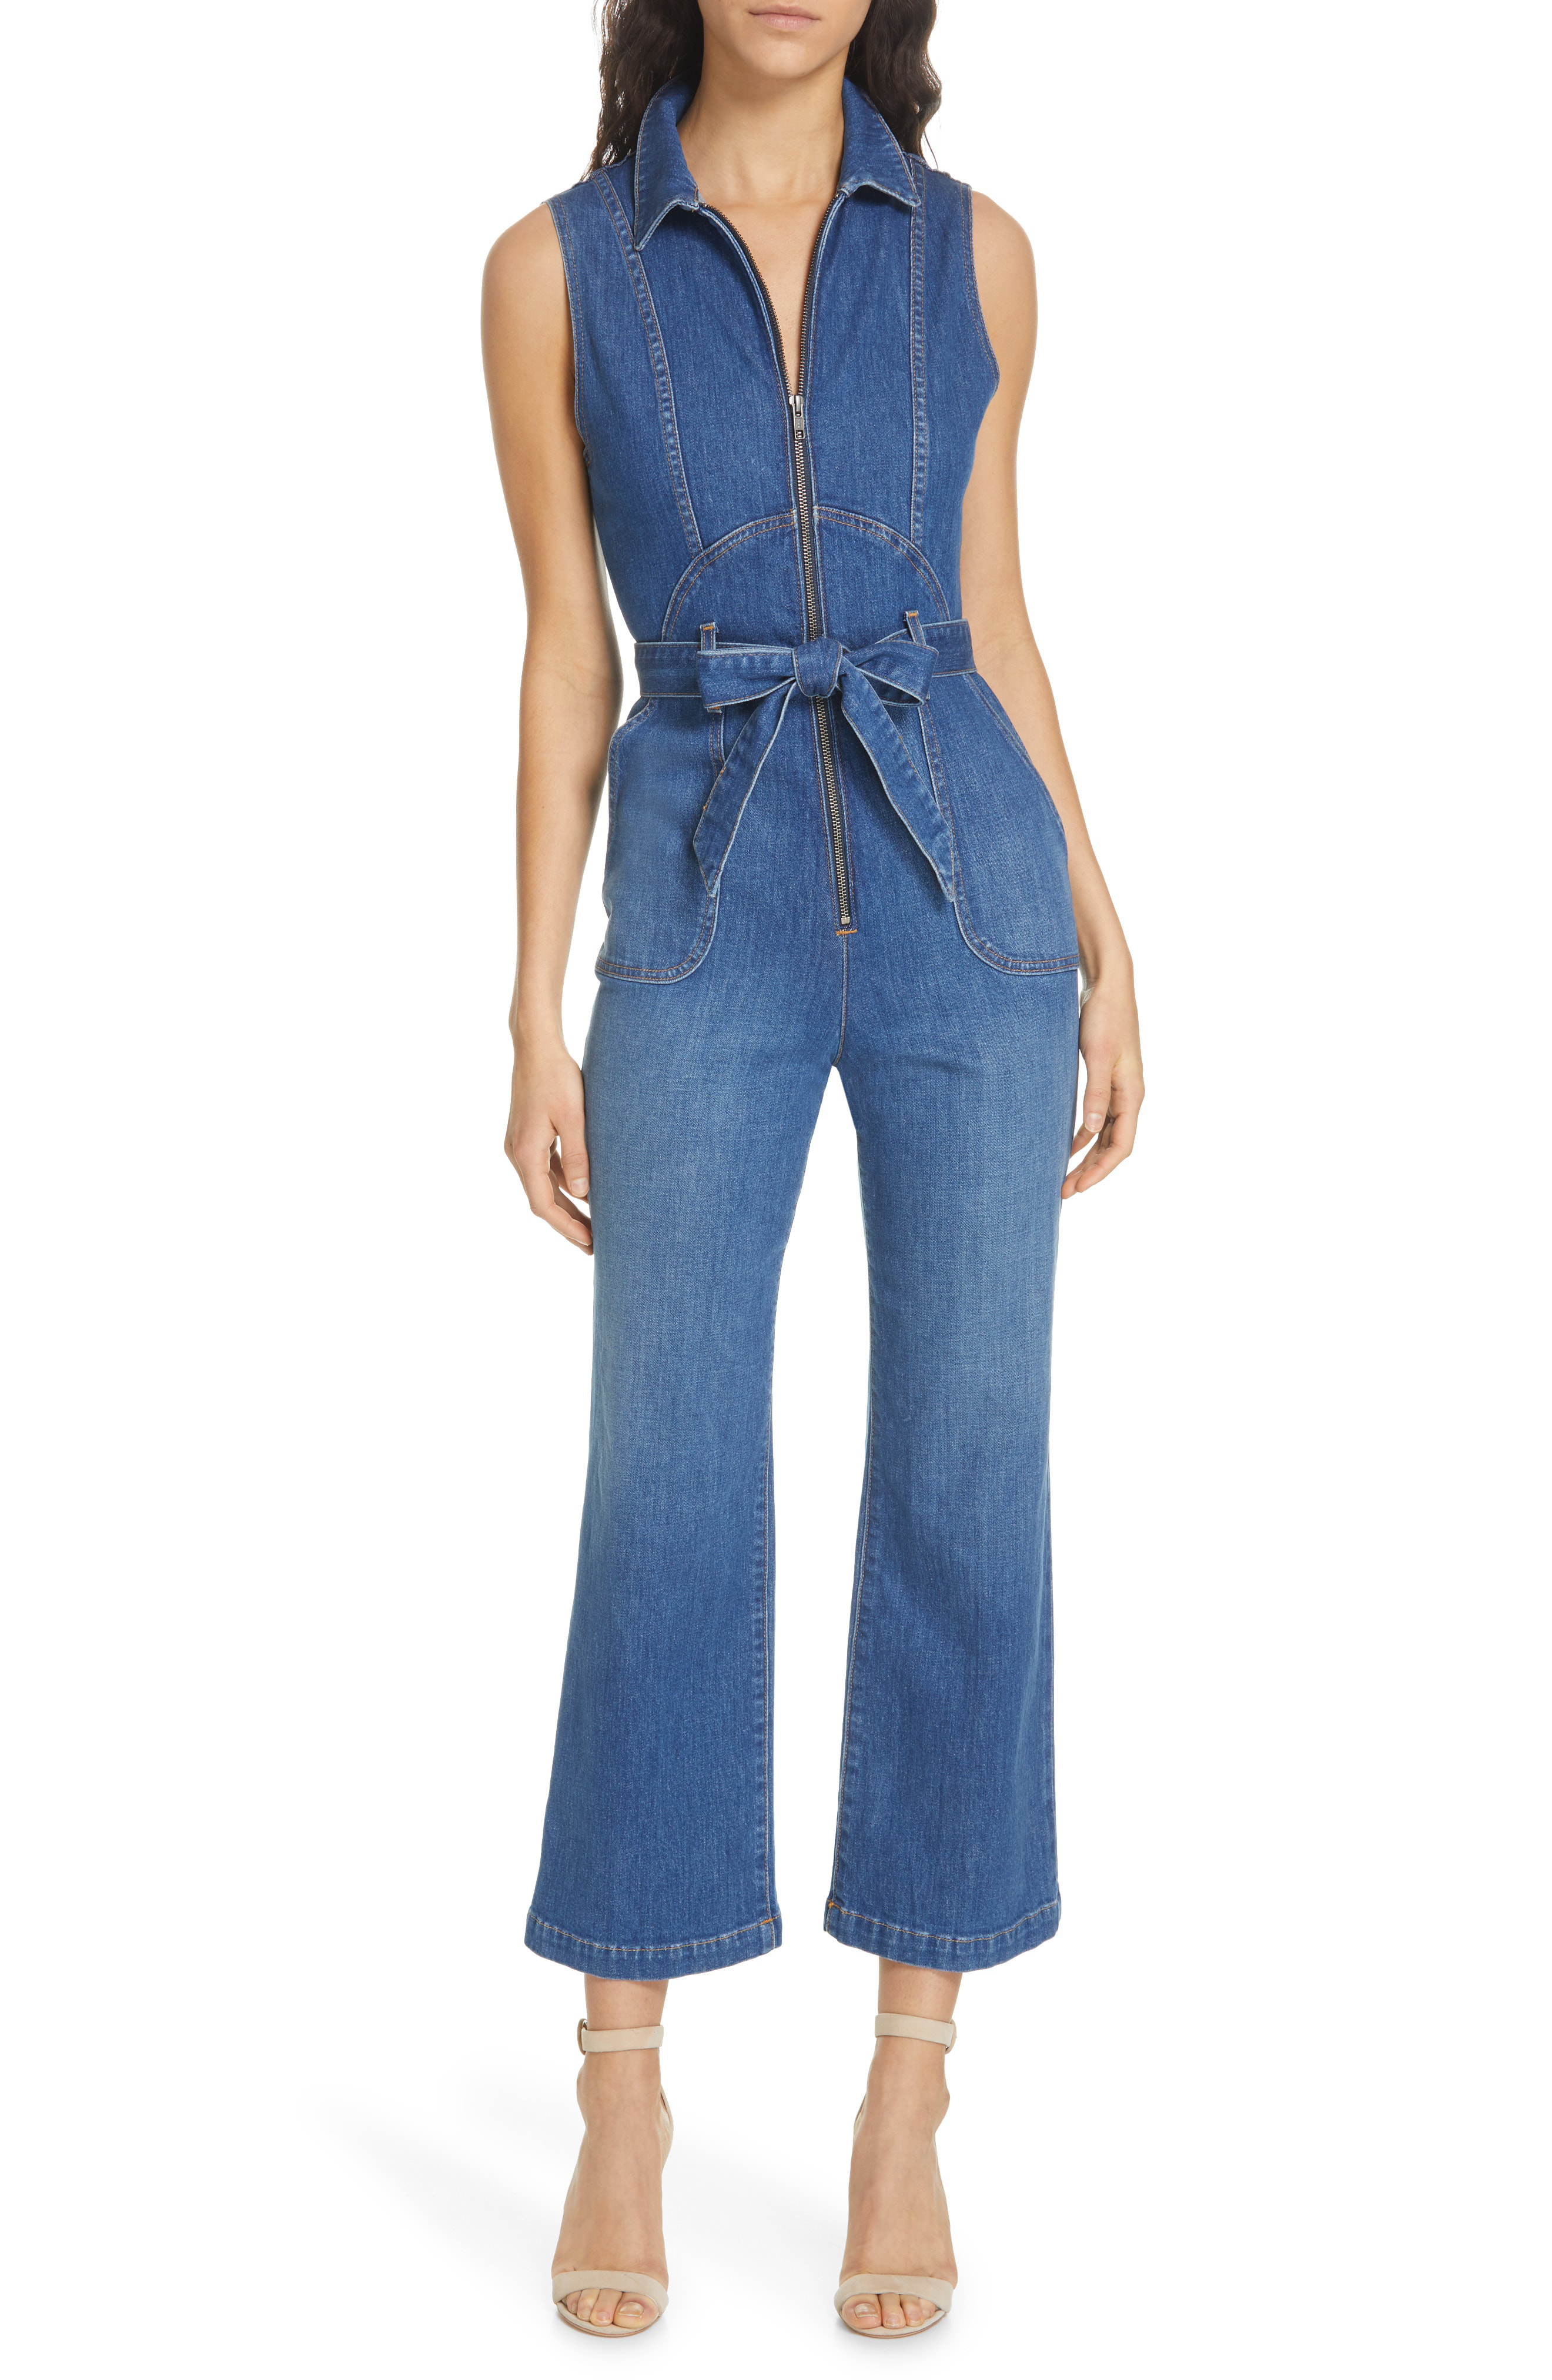 75ab74c4b7 Alice + Olivia Jeans Gorgeous Sexy 70S Cropped Sleeveless Jumpsuit In Frnch  Blue